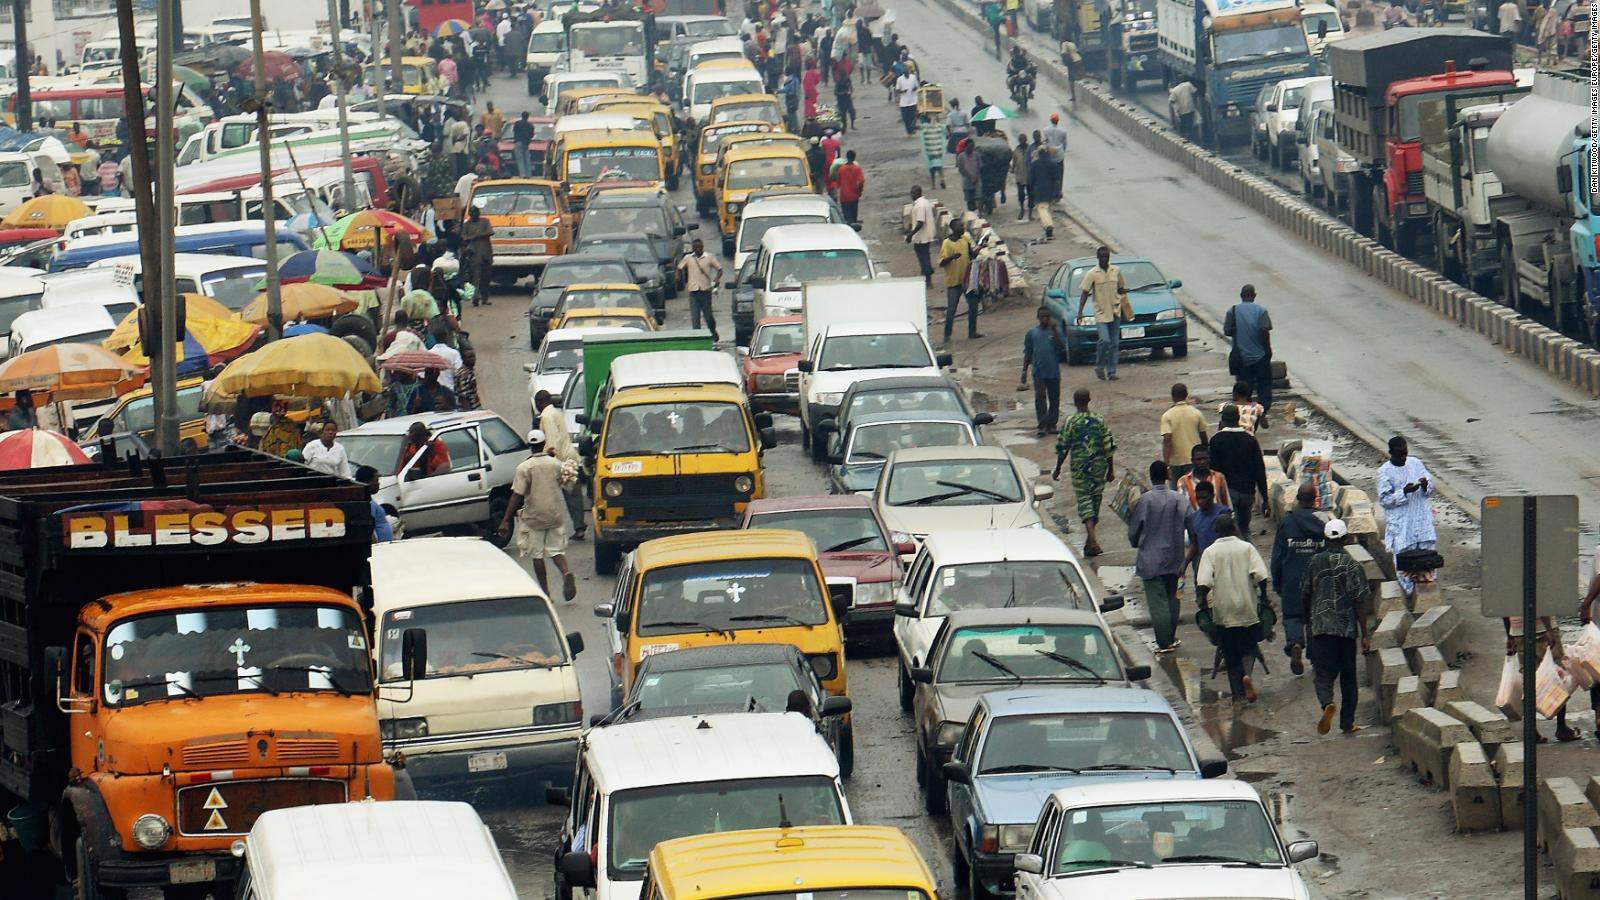 US suggests model Transportation Action plan to ease gridlock in Lagos